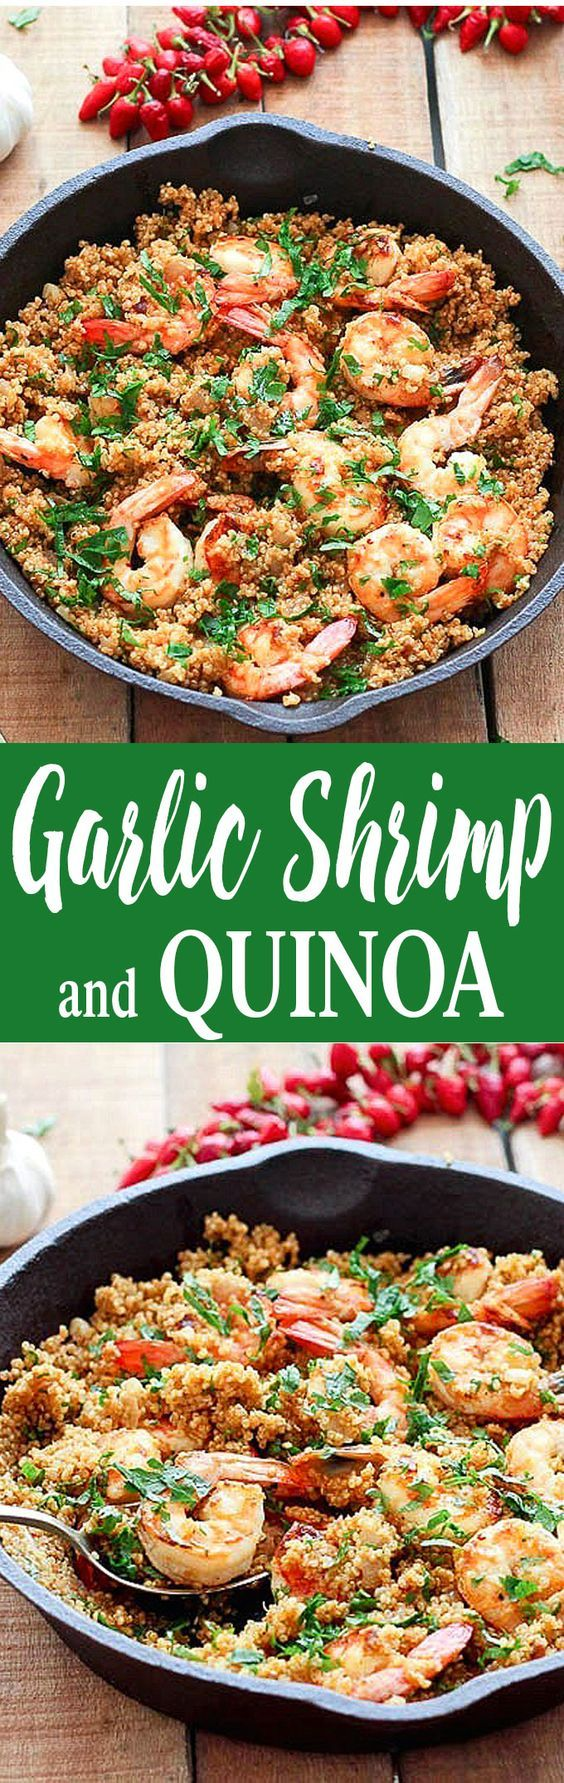 Garlic Shrimp and Quinoa - As Easy As Apple Pie